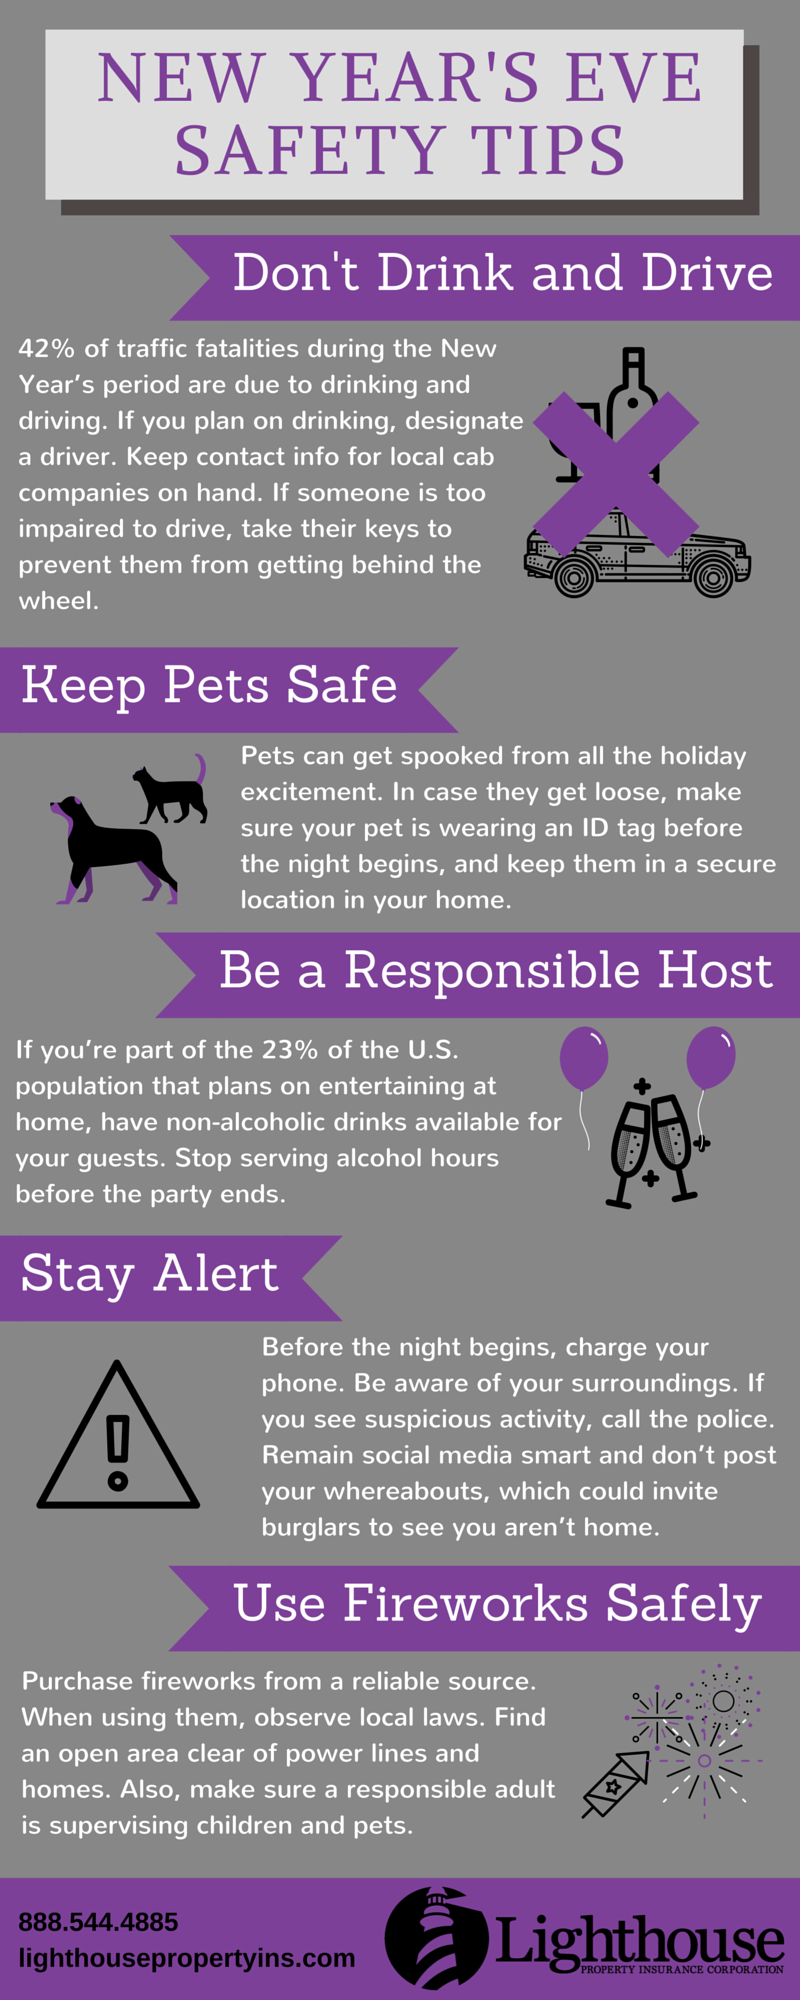 New Year's Eve Safety Tips Infographic